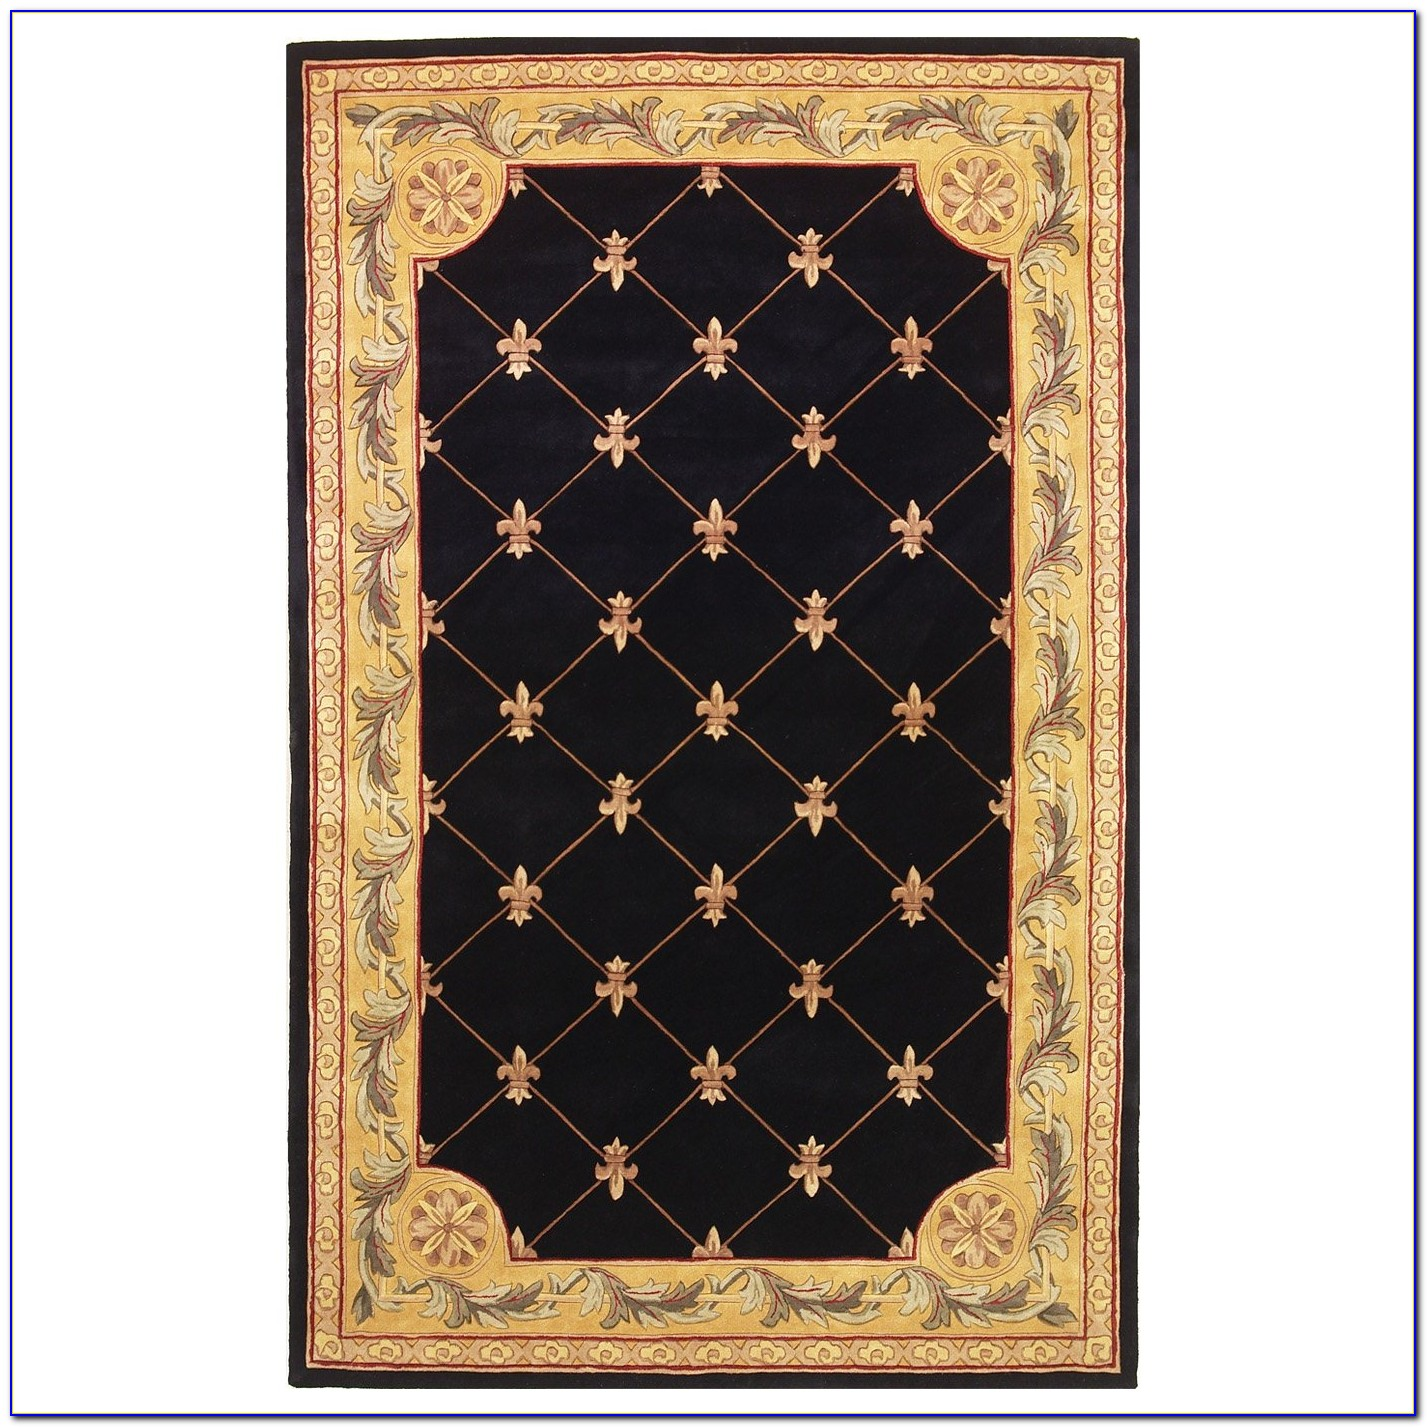 fleur de lis rugs bed bath and beyond rugs home design ideas ewp8y3onyx57362. Black Bedroom Furniture Sets. Home Design Ideas